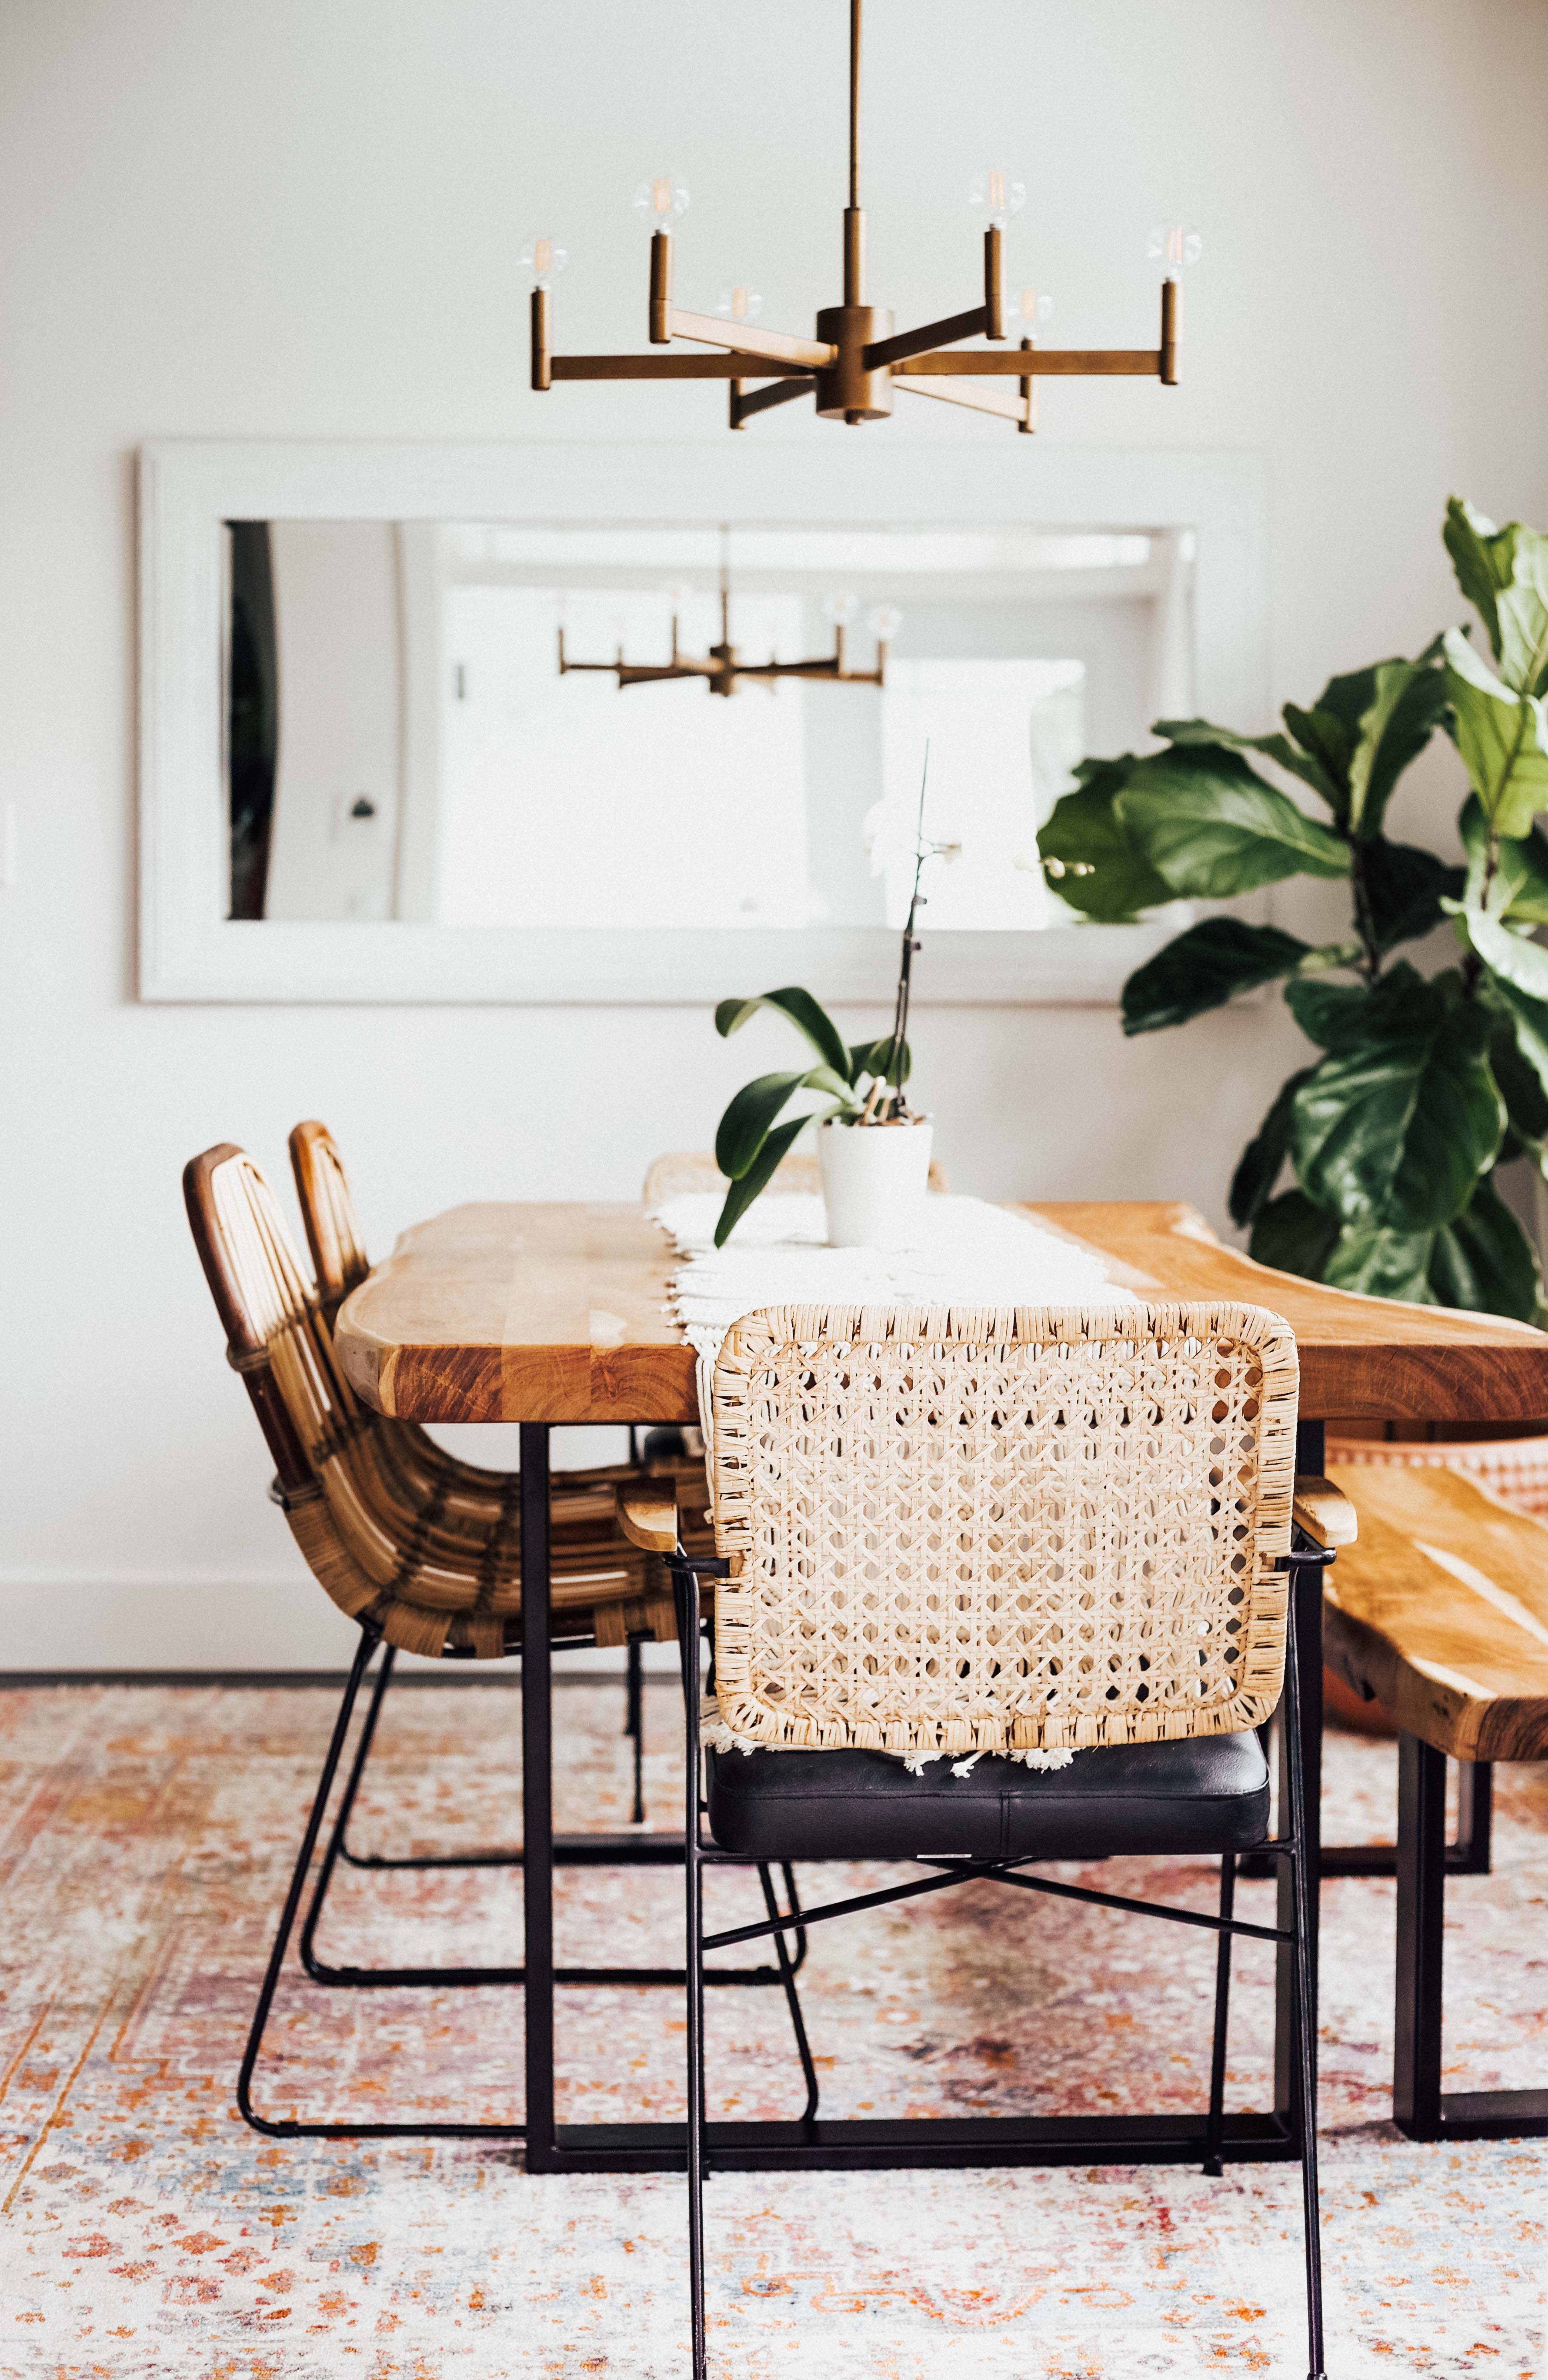 HOW TO INCORPORATE WICKER AND RATTAN IN YOUR HOME